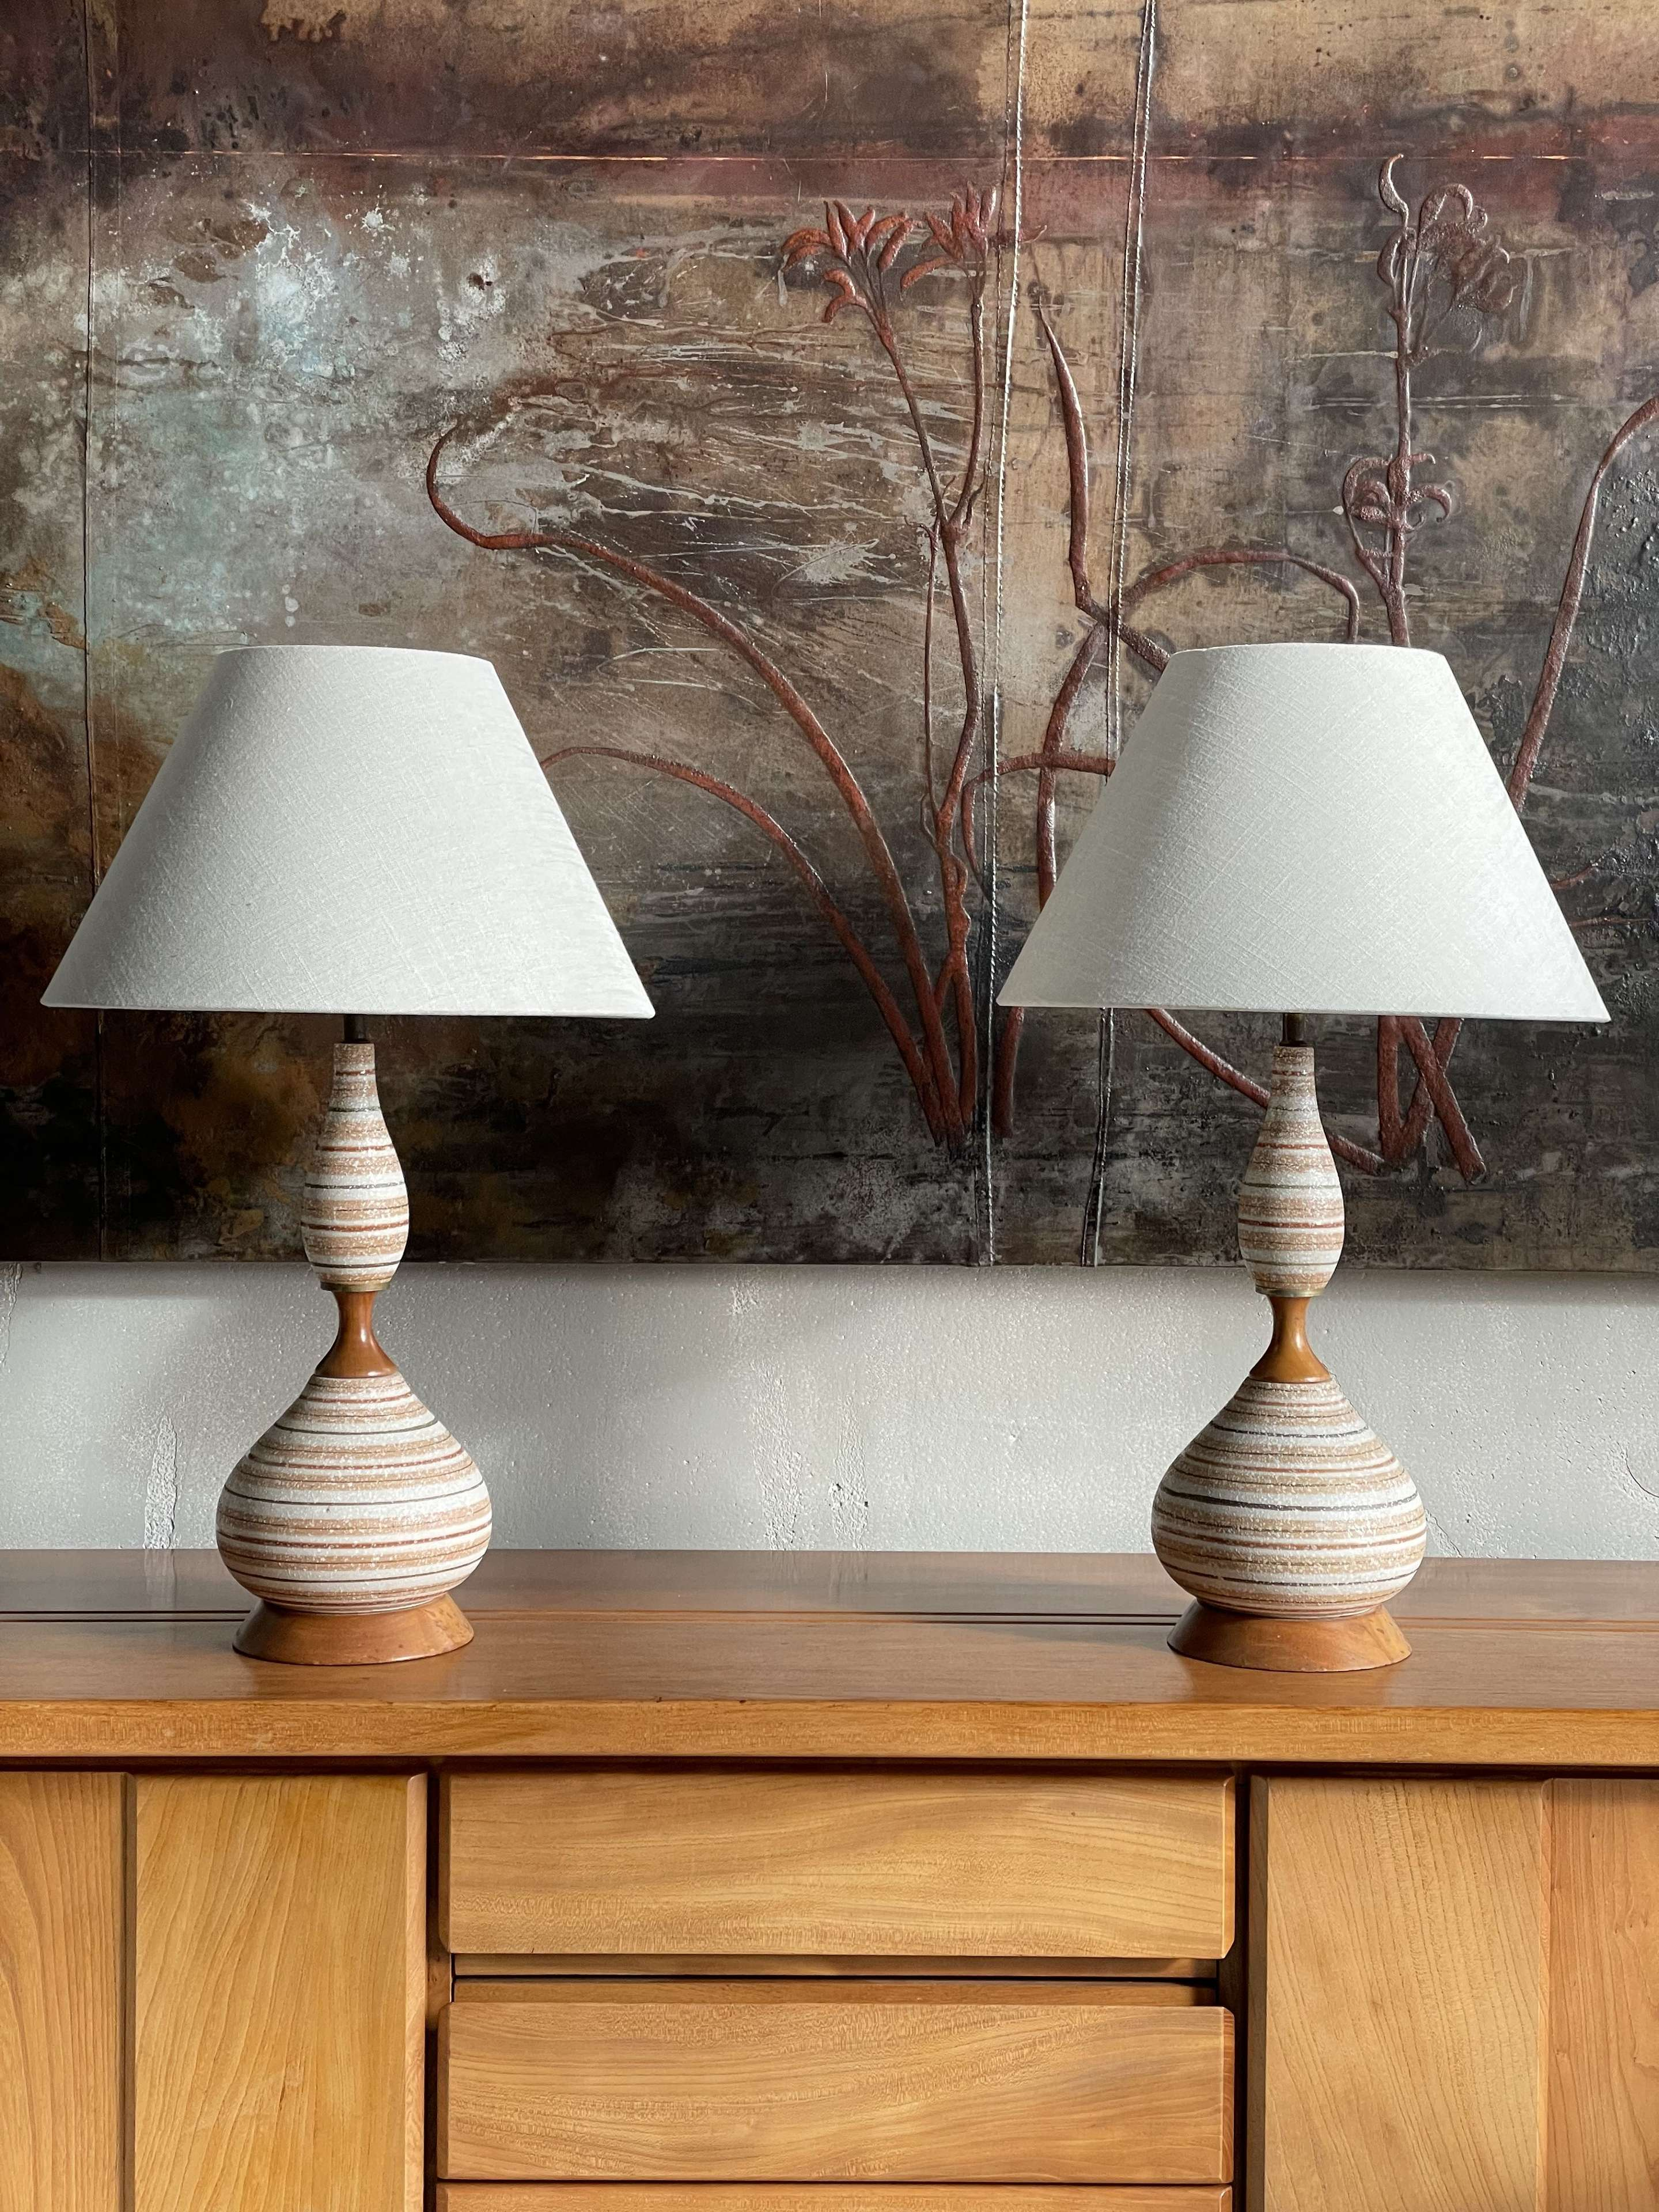 A pair of 1960s American Table Lamps